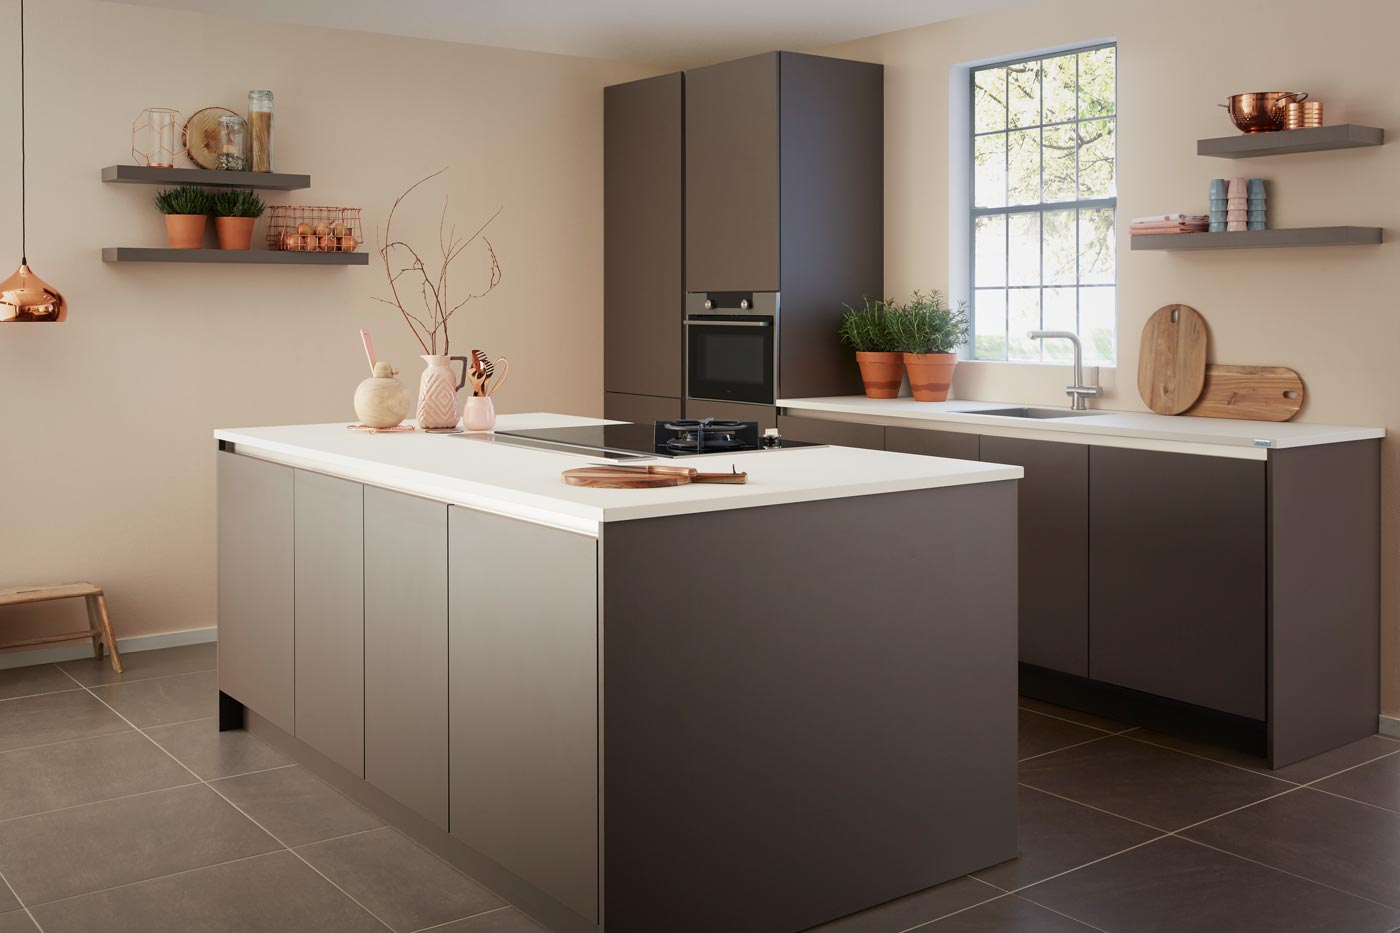 handleless kitchen GL2000 truffle